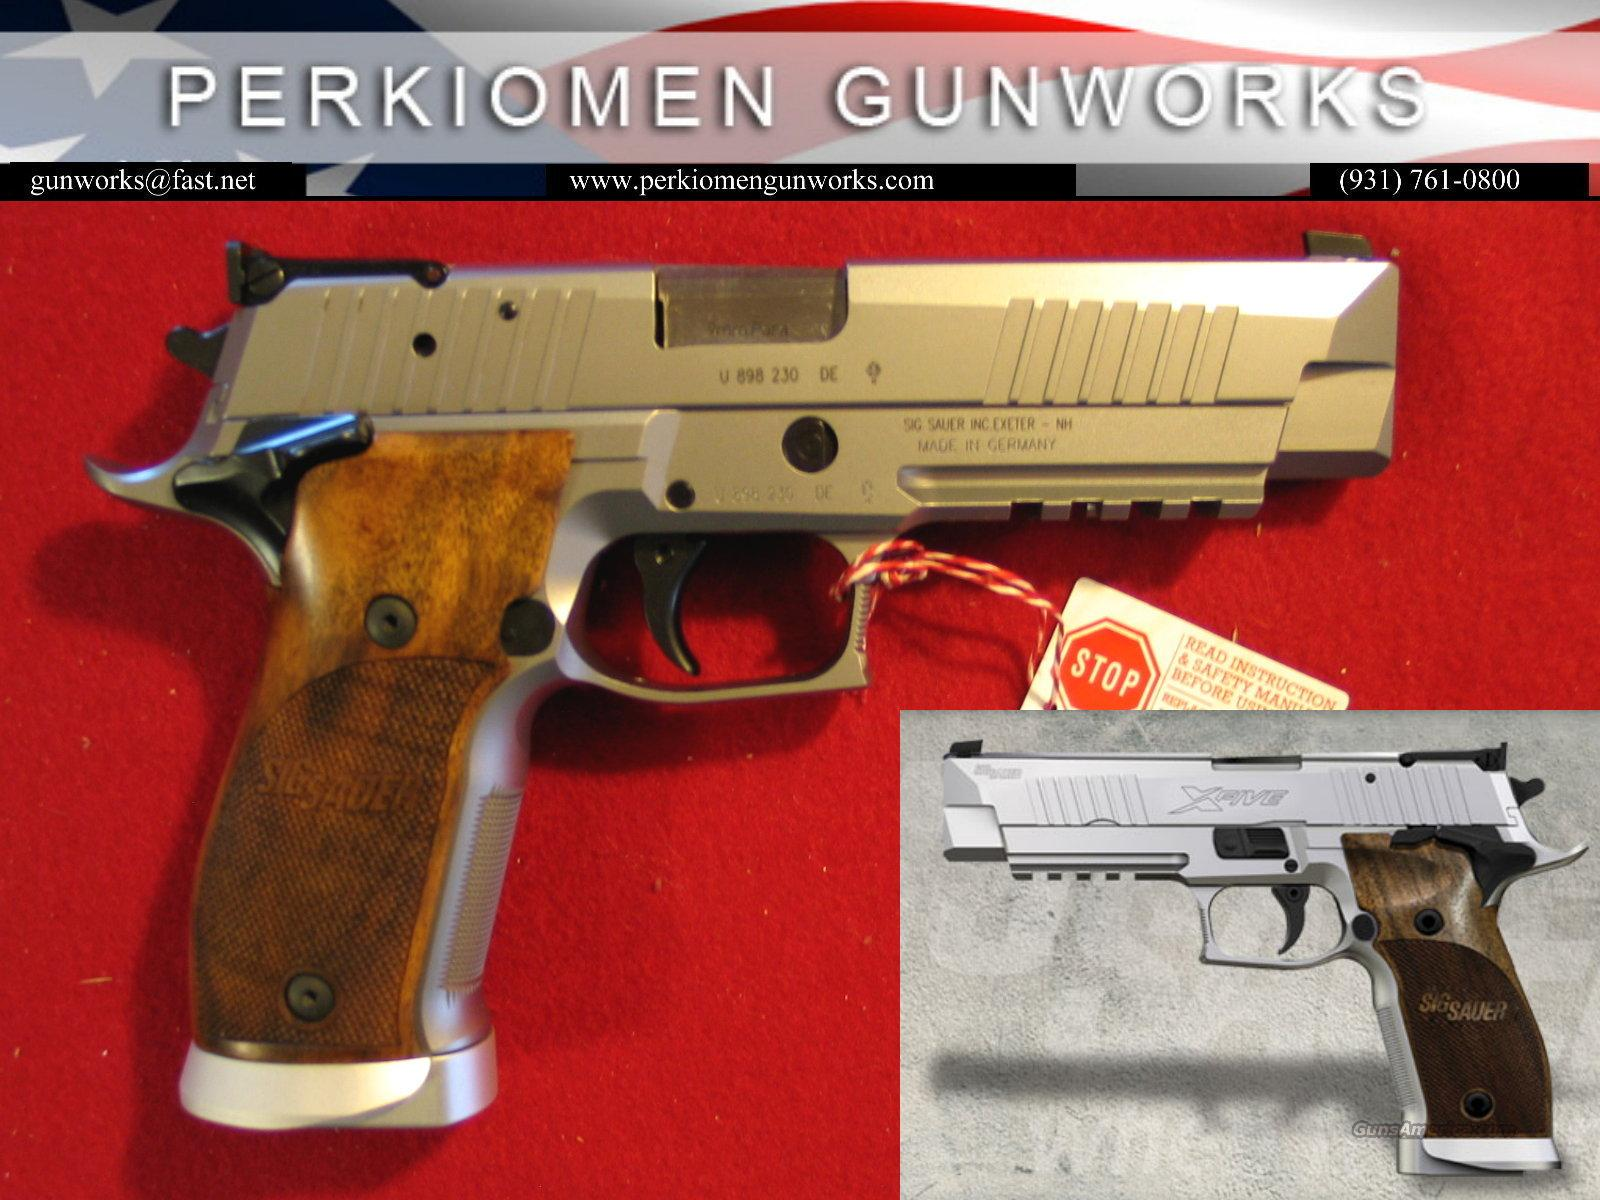 P226 X5 Classic, 9mm, Custom Shop, New in Box  Guns > Pistols > Sig - Sauer/Sigarms Pistols > P226